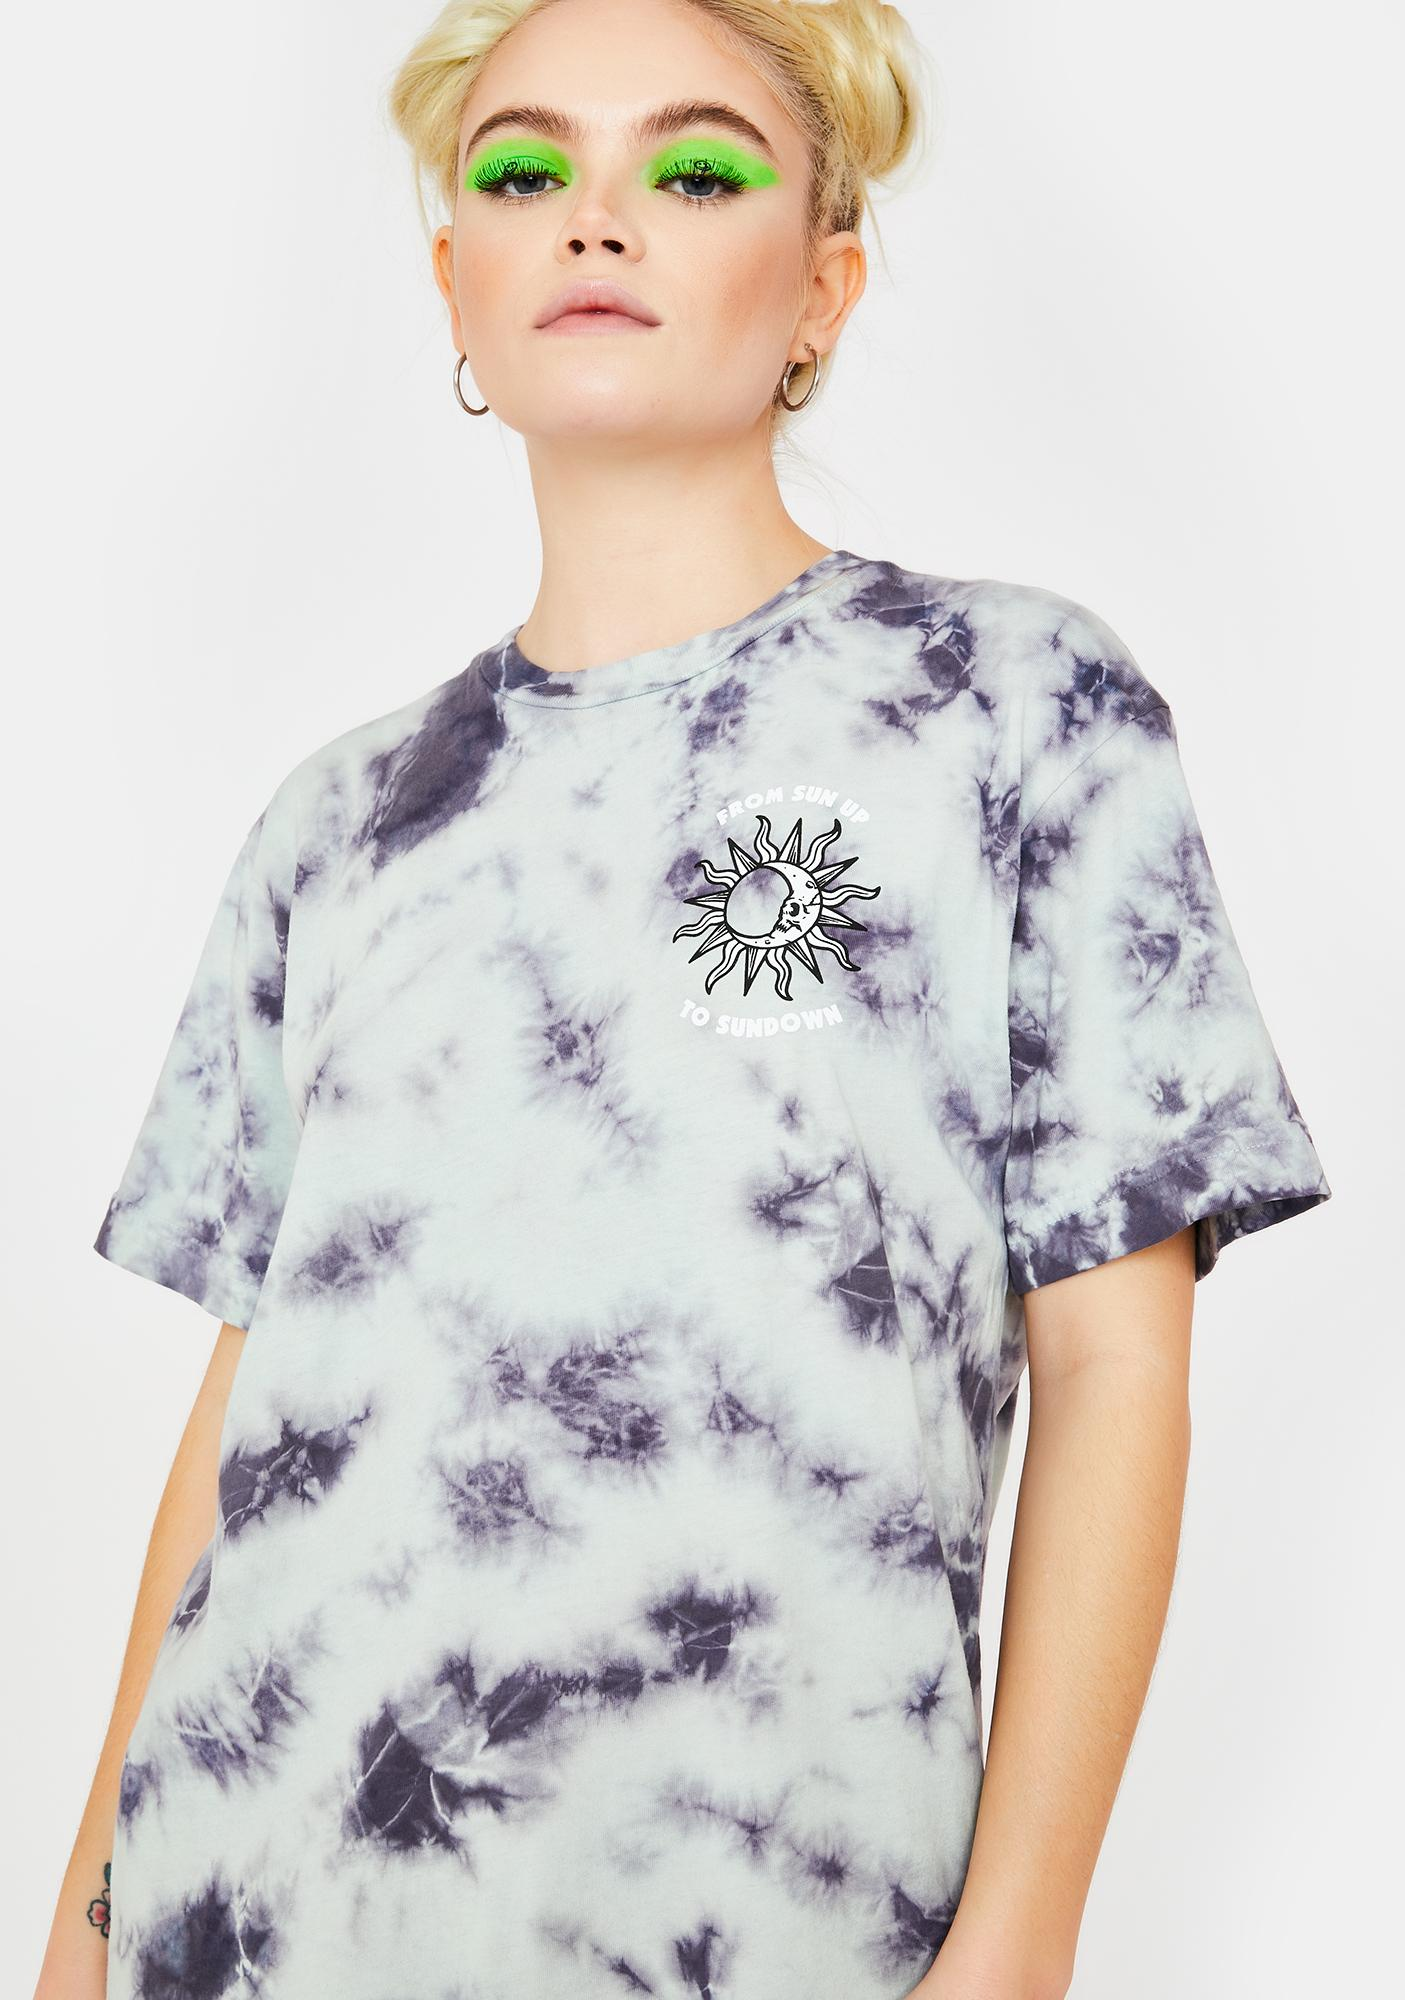 Last Call Co. Sundown Graphic Tee